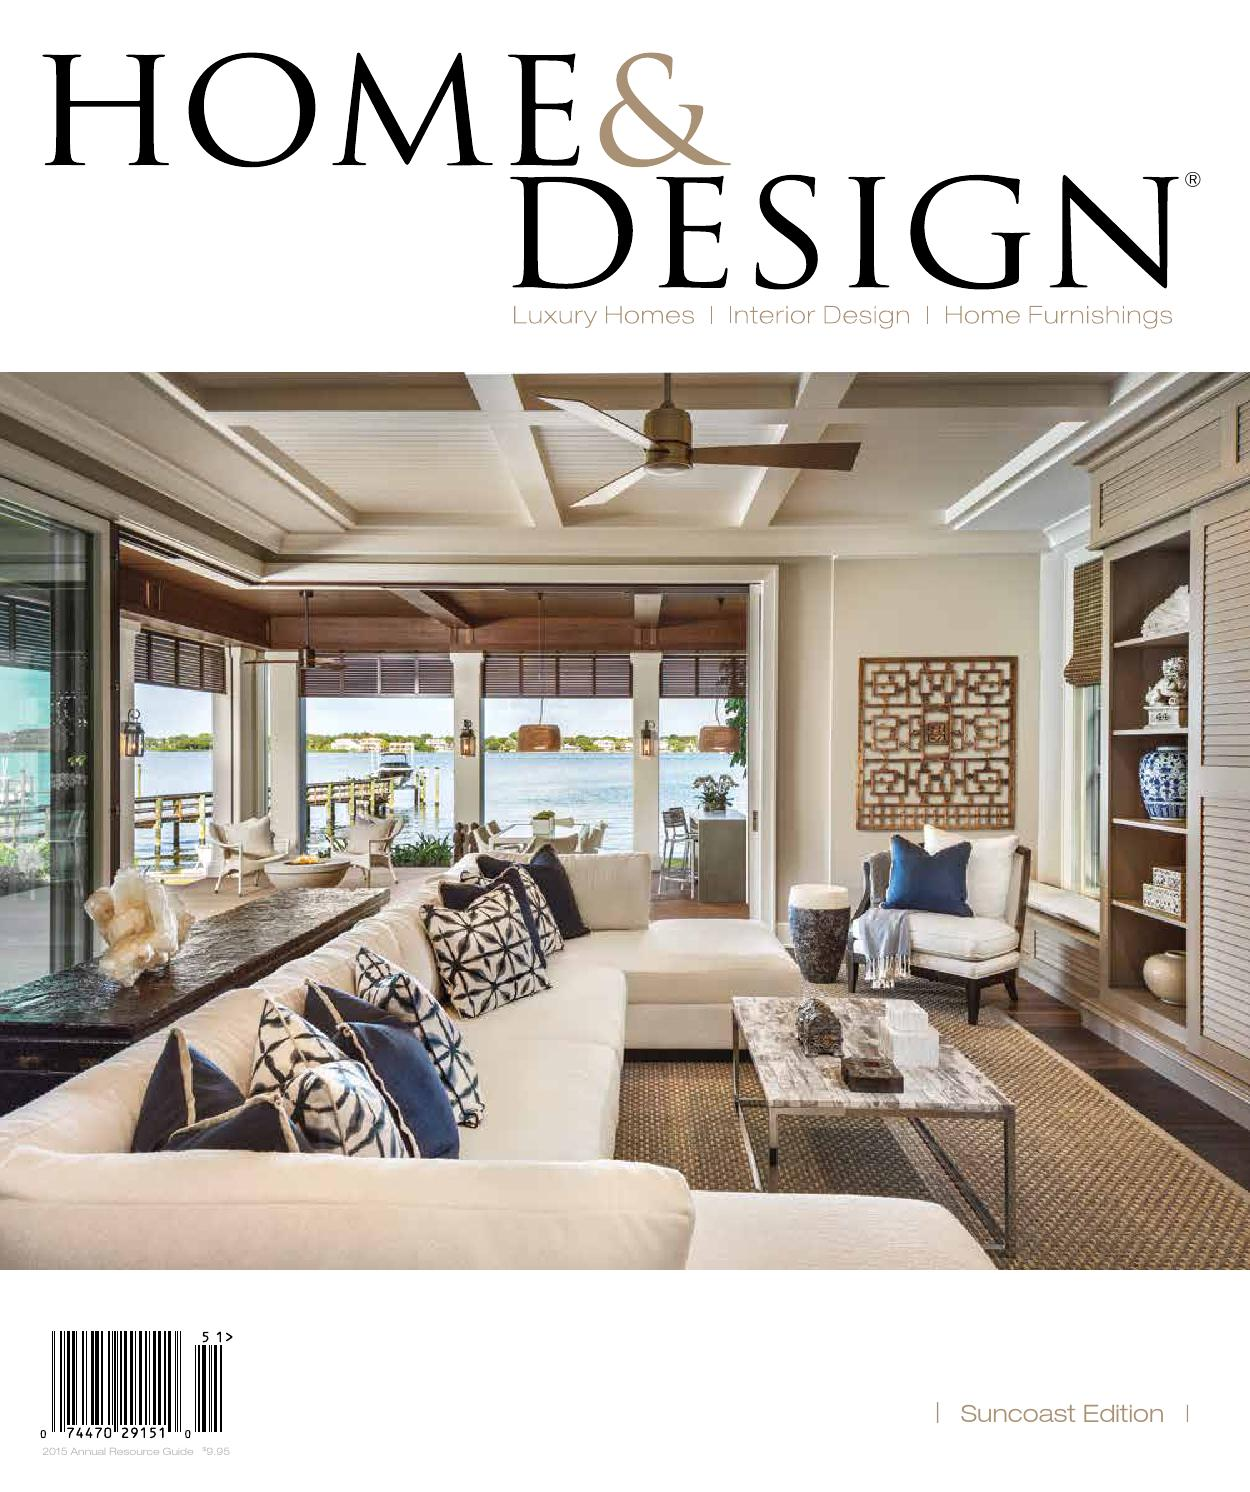 home design magazine annual resource guide 2015 suncoast florida edition by anthony spano issuu - Home Design Magazine